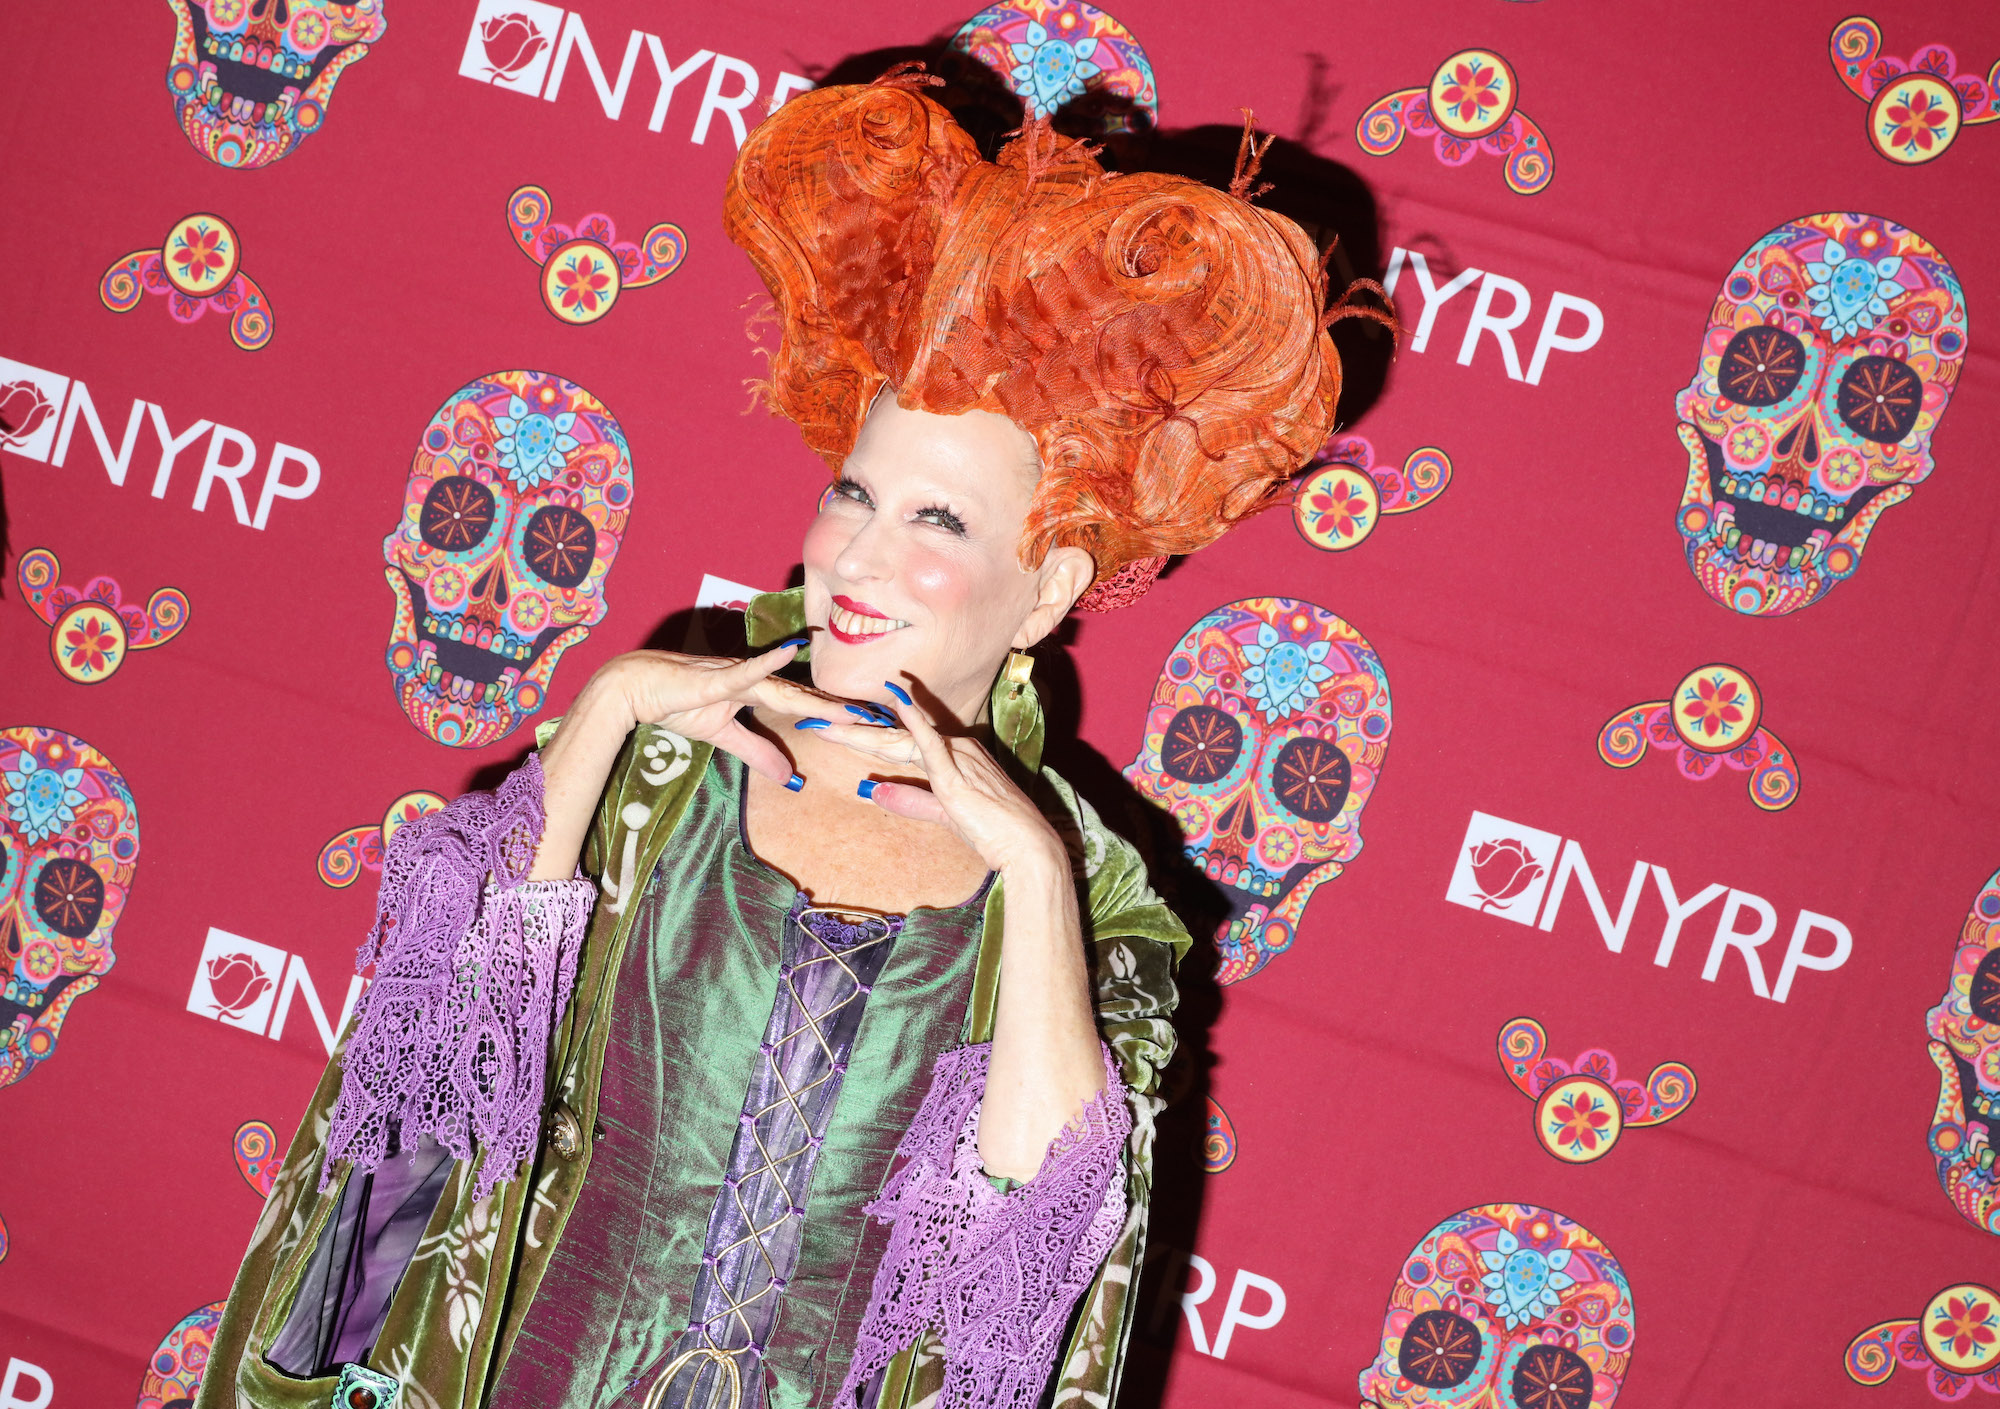 Bette Midler dressed as Winifred Sanderson from 'Hocus Pocus,' on the red carpet at Bette Midler's Annual Hulaween Bash on October 28, 2016.